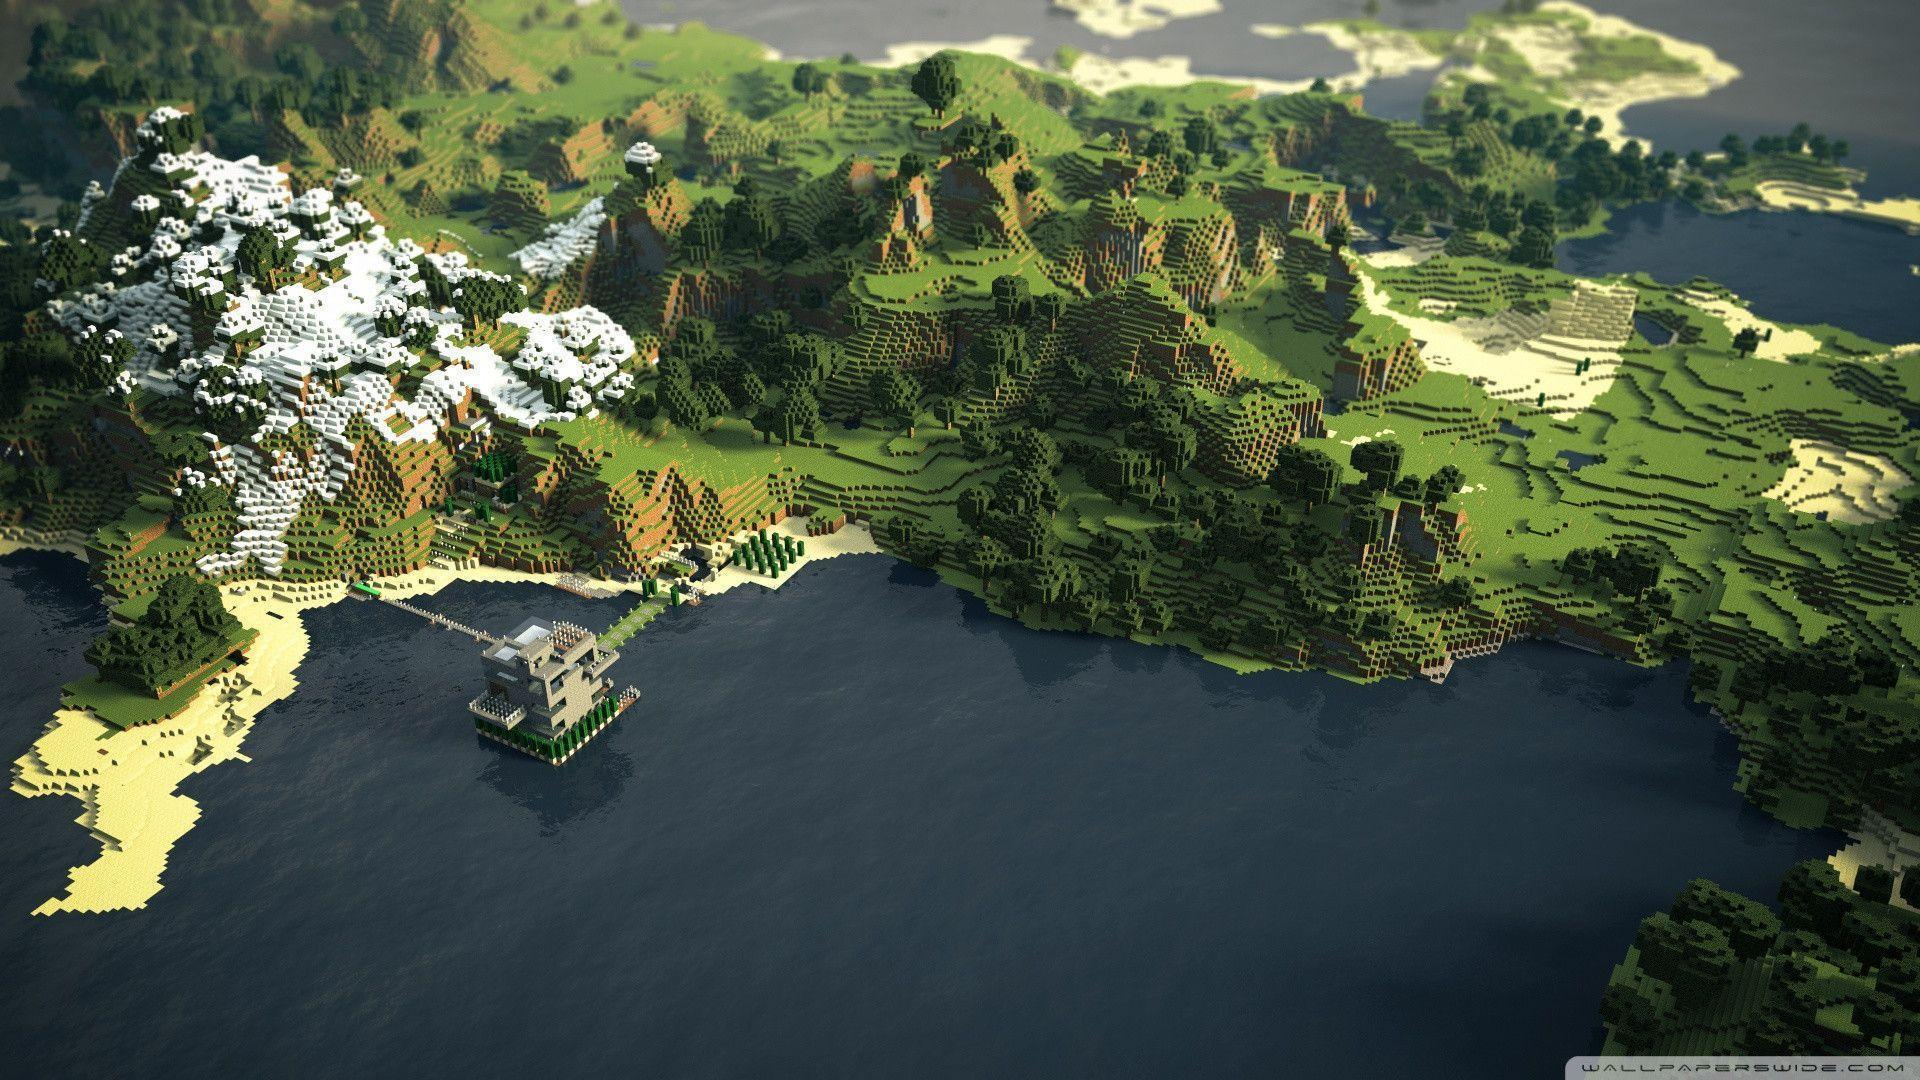 Minecraft Wallpaper 1920X1080 wallpaper - 720326